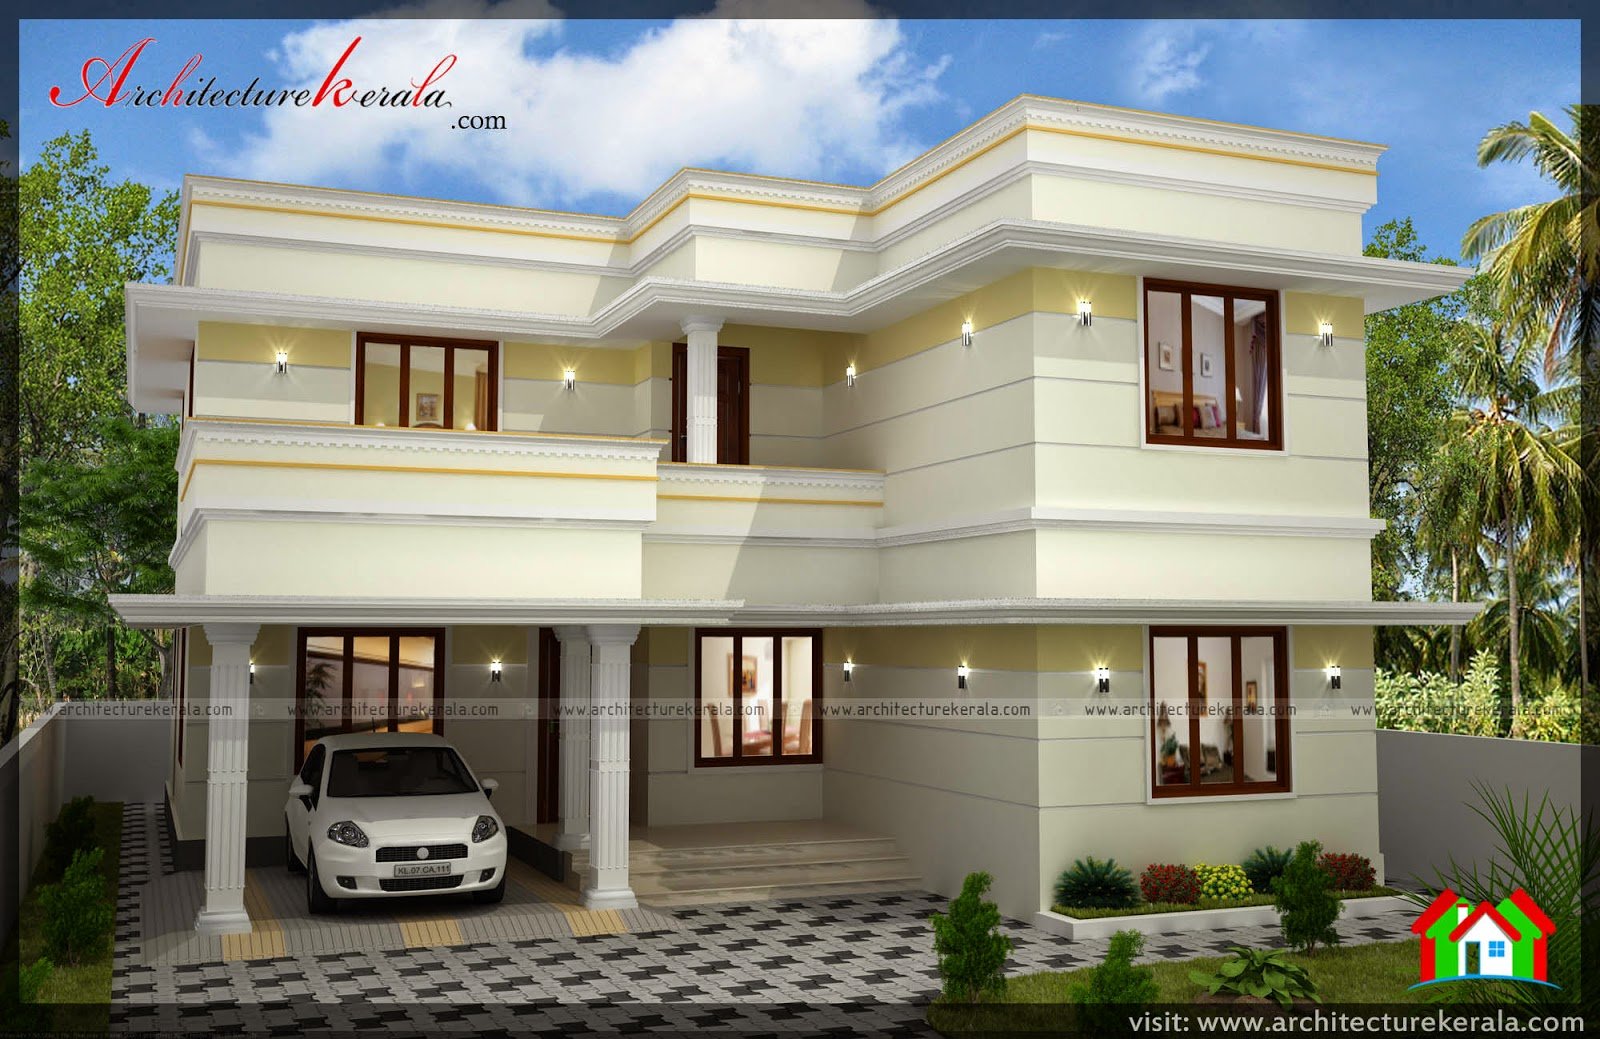 Three bedroom two storey house plan architecture kerala for House plans two storey